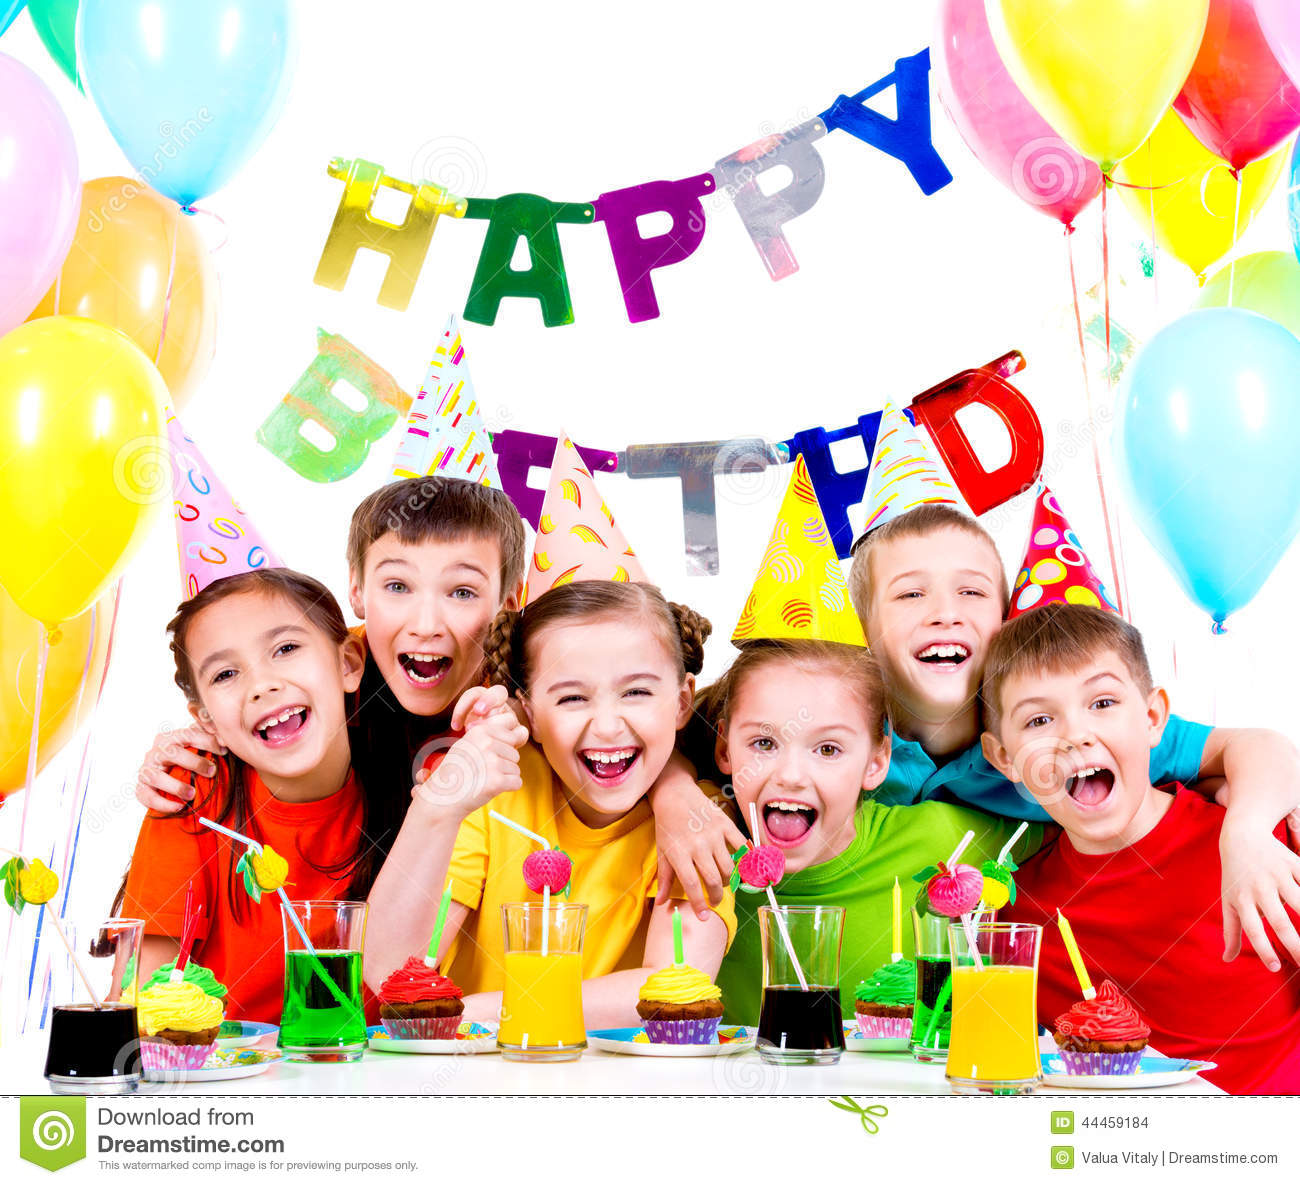 fun kids birthday parties ; group-laughing-kids-having-fun-birthday-party-isolated-white-44459184